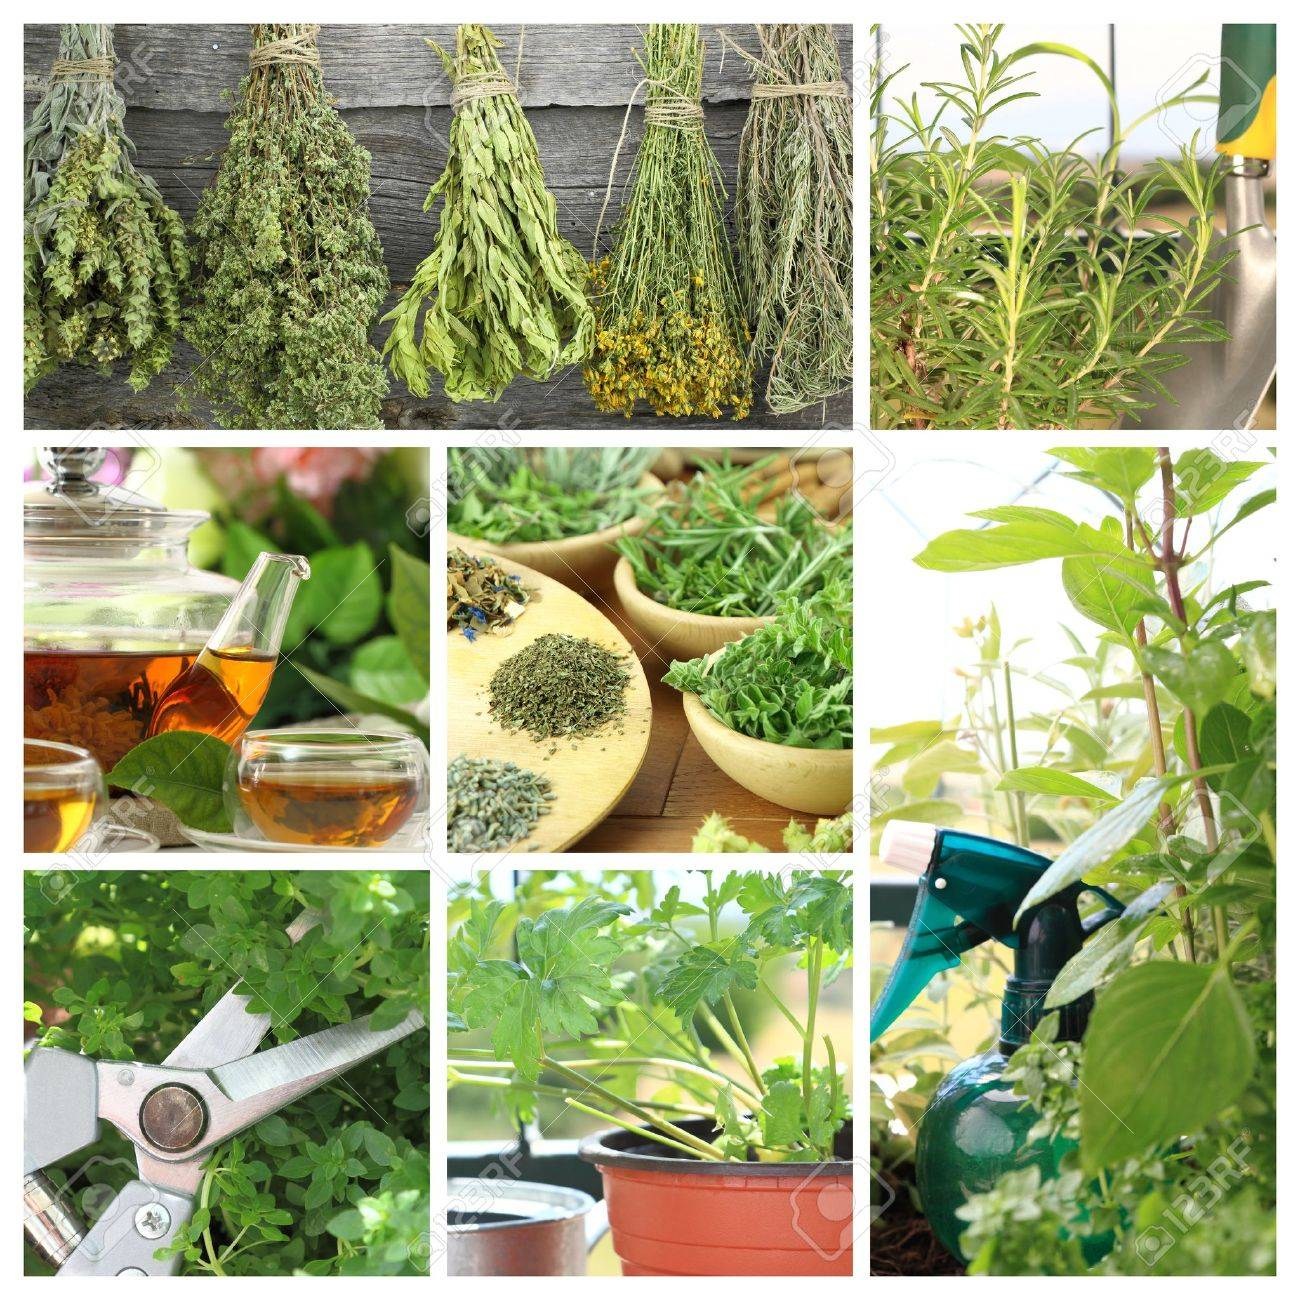 Collage of fresh herbs on balcony garden Stock Photo - 20457343